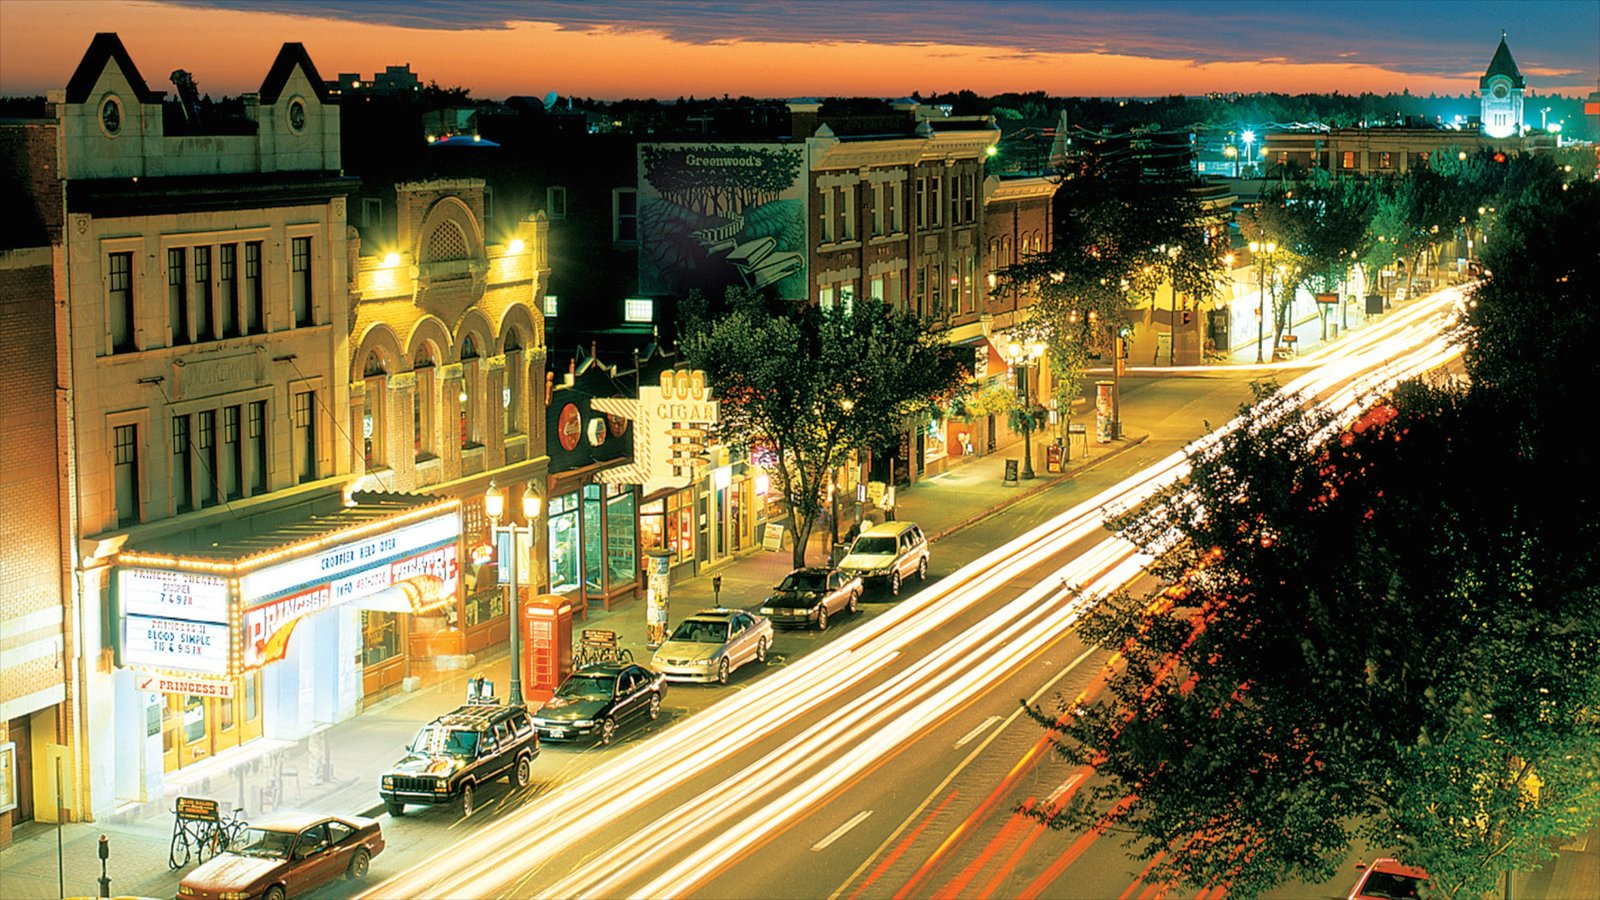 Old Strathcona showing heritage architecture, night scenes and street scenes